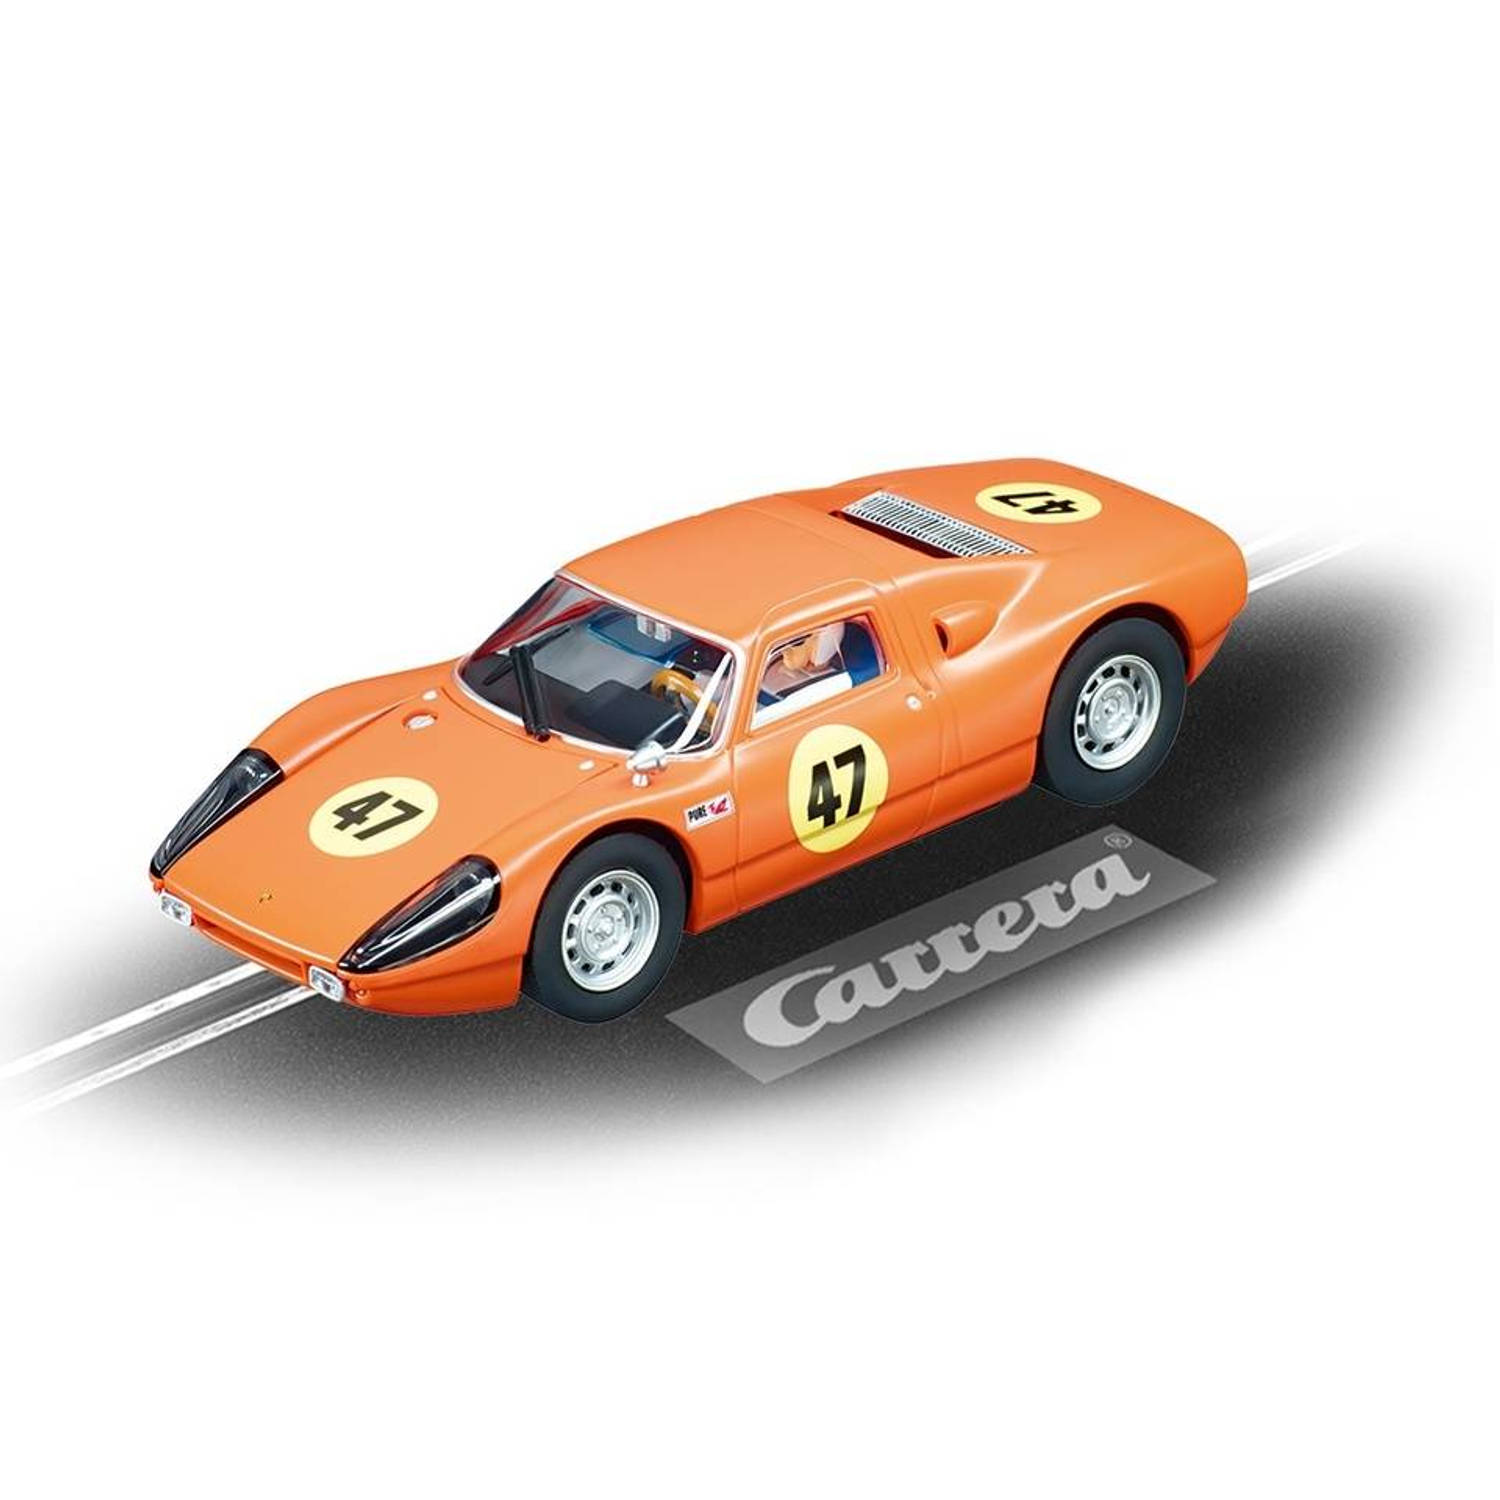 Carrera Evolution racebaan auto Porsche 904 Carrera GTS No.47